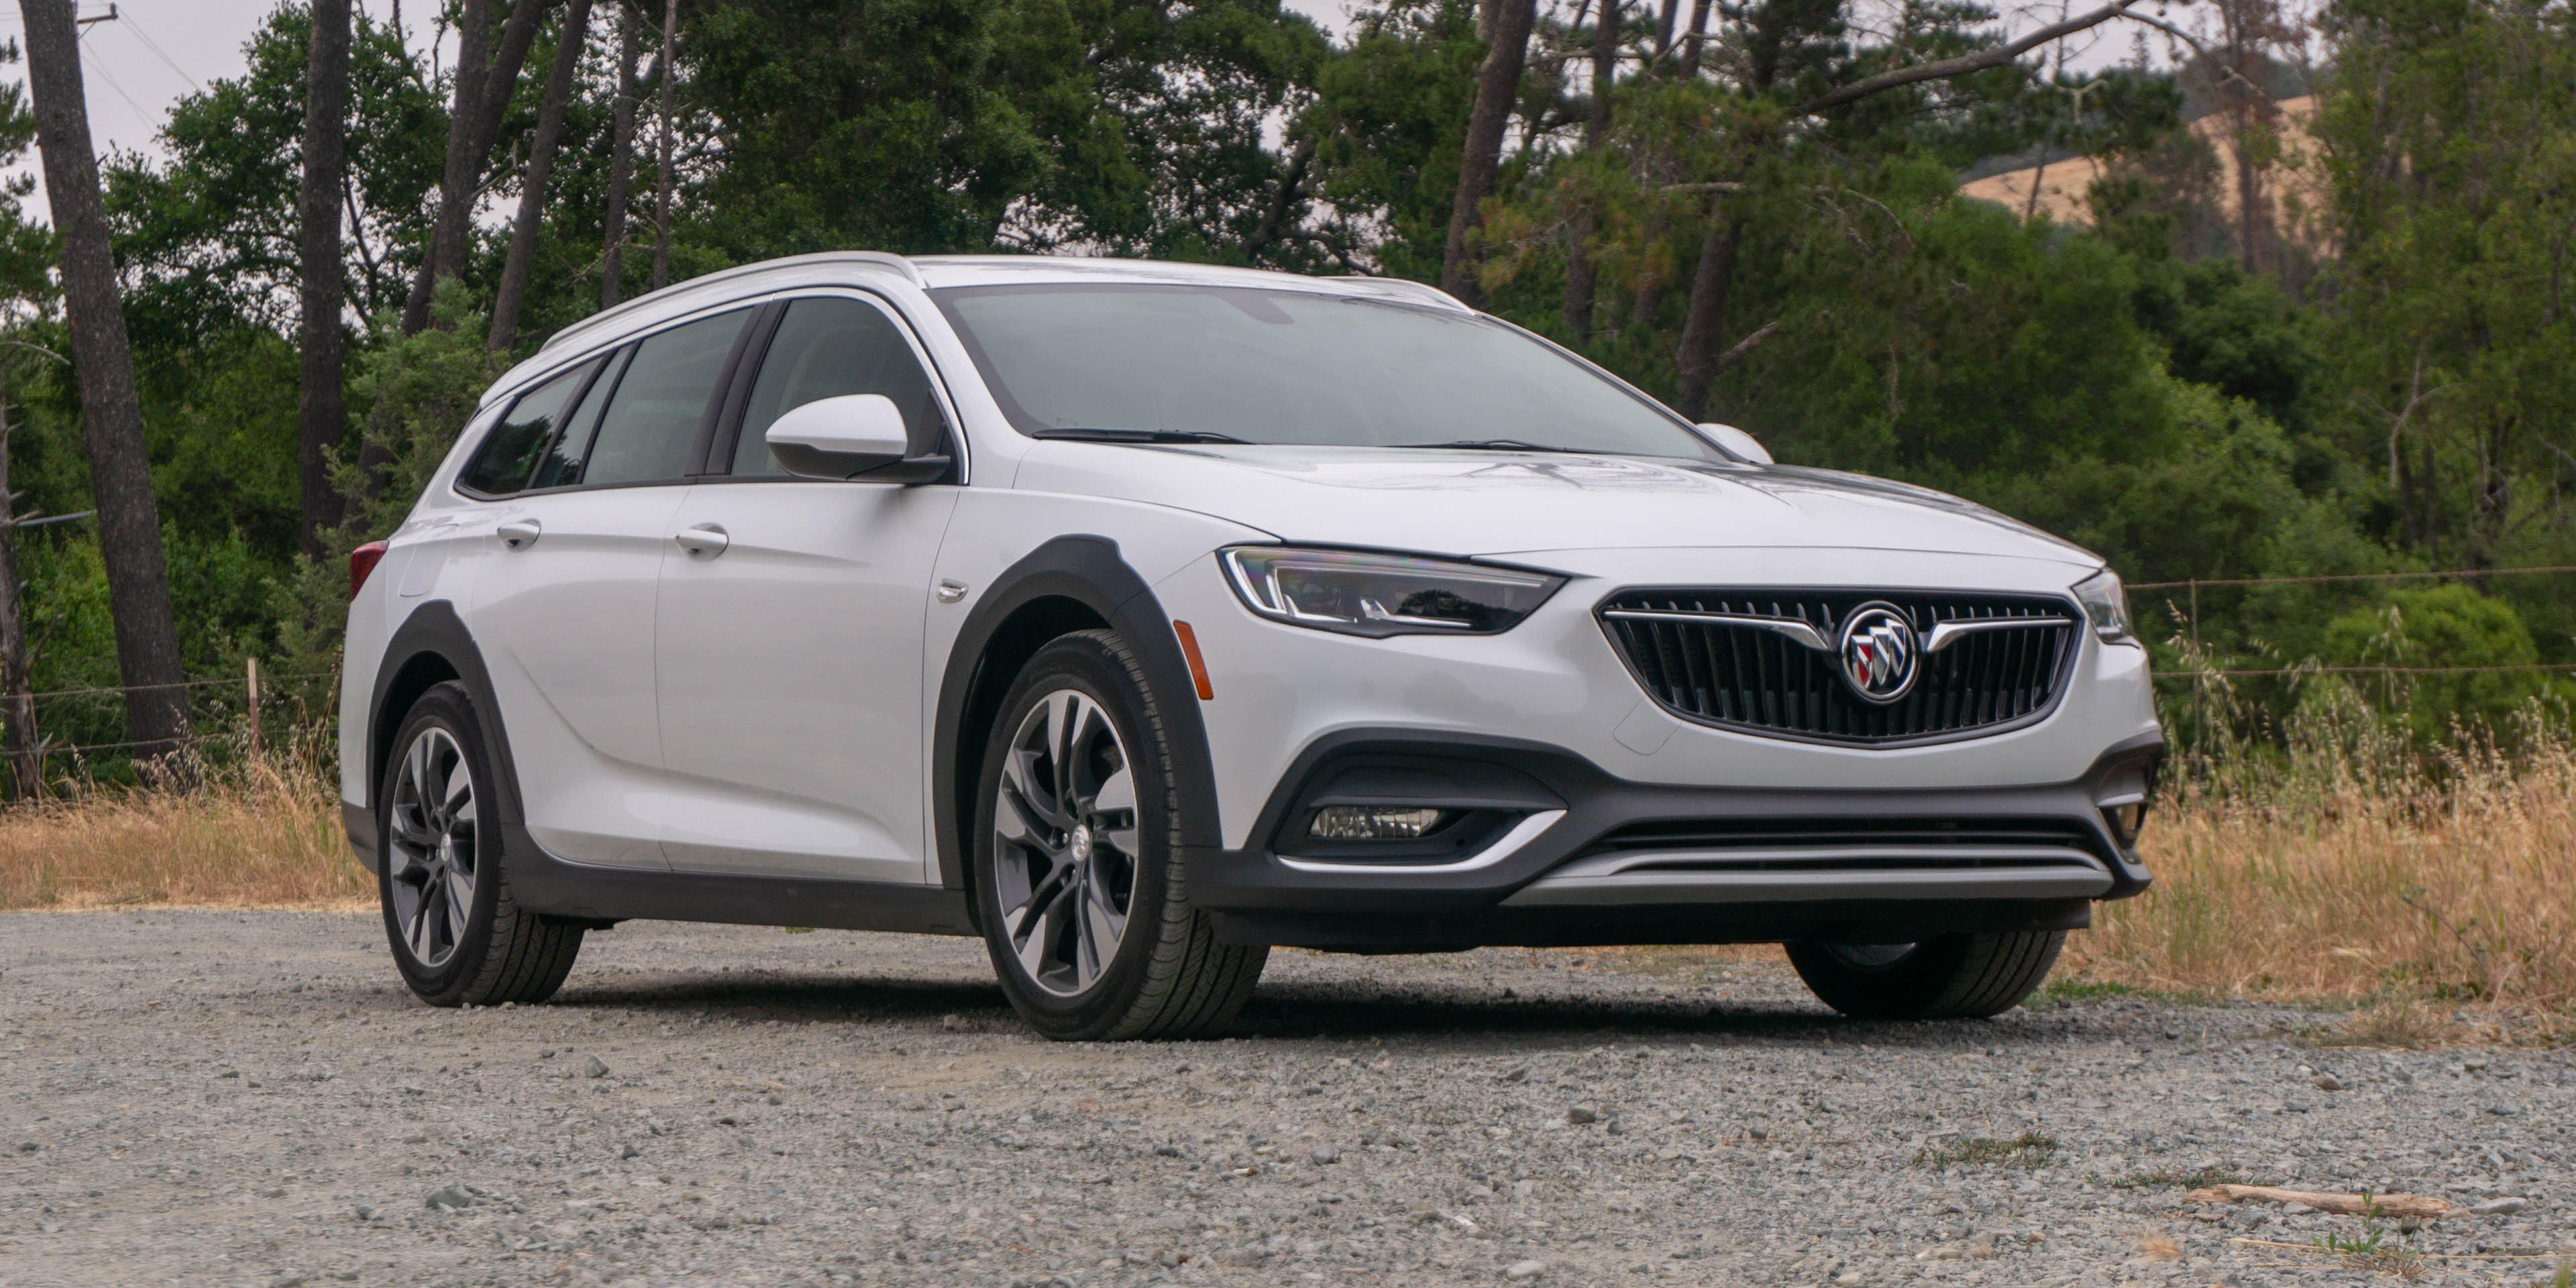 2018 Buick Regal TourX review: Stylish and solid, but not a great value | TechSwitch